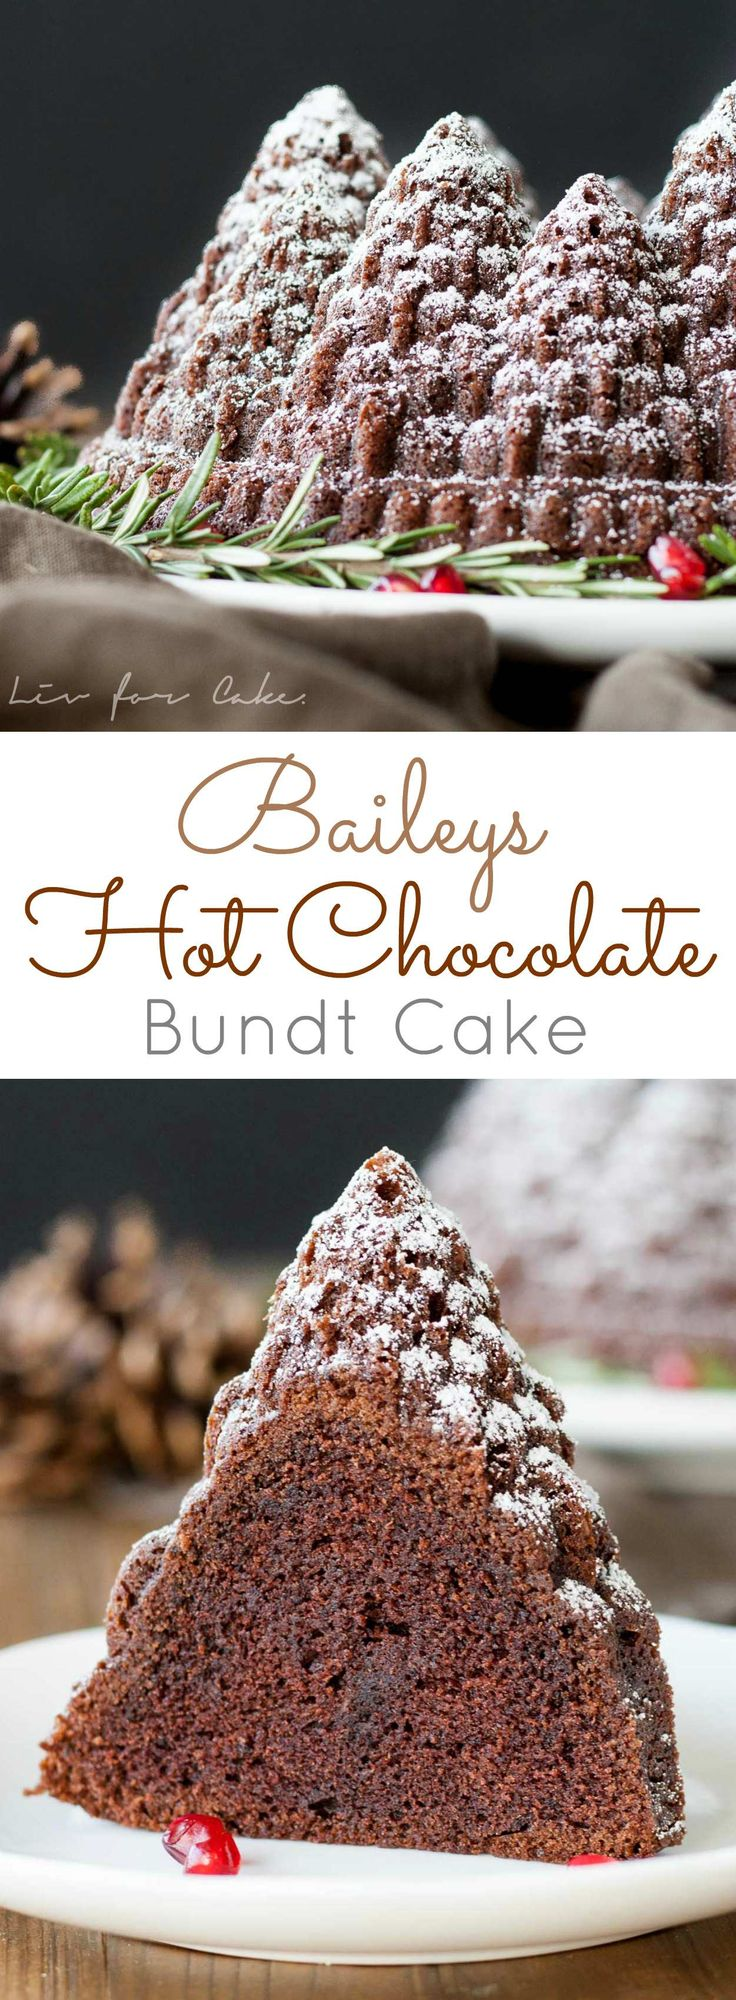 Baileys Hot Chocolate Bundt Cake. This rich chocolate cake is kicked up a notch with the delicious flavour of Baileys Irish Cream. | livforcake.com